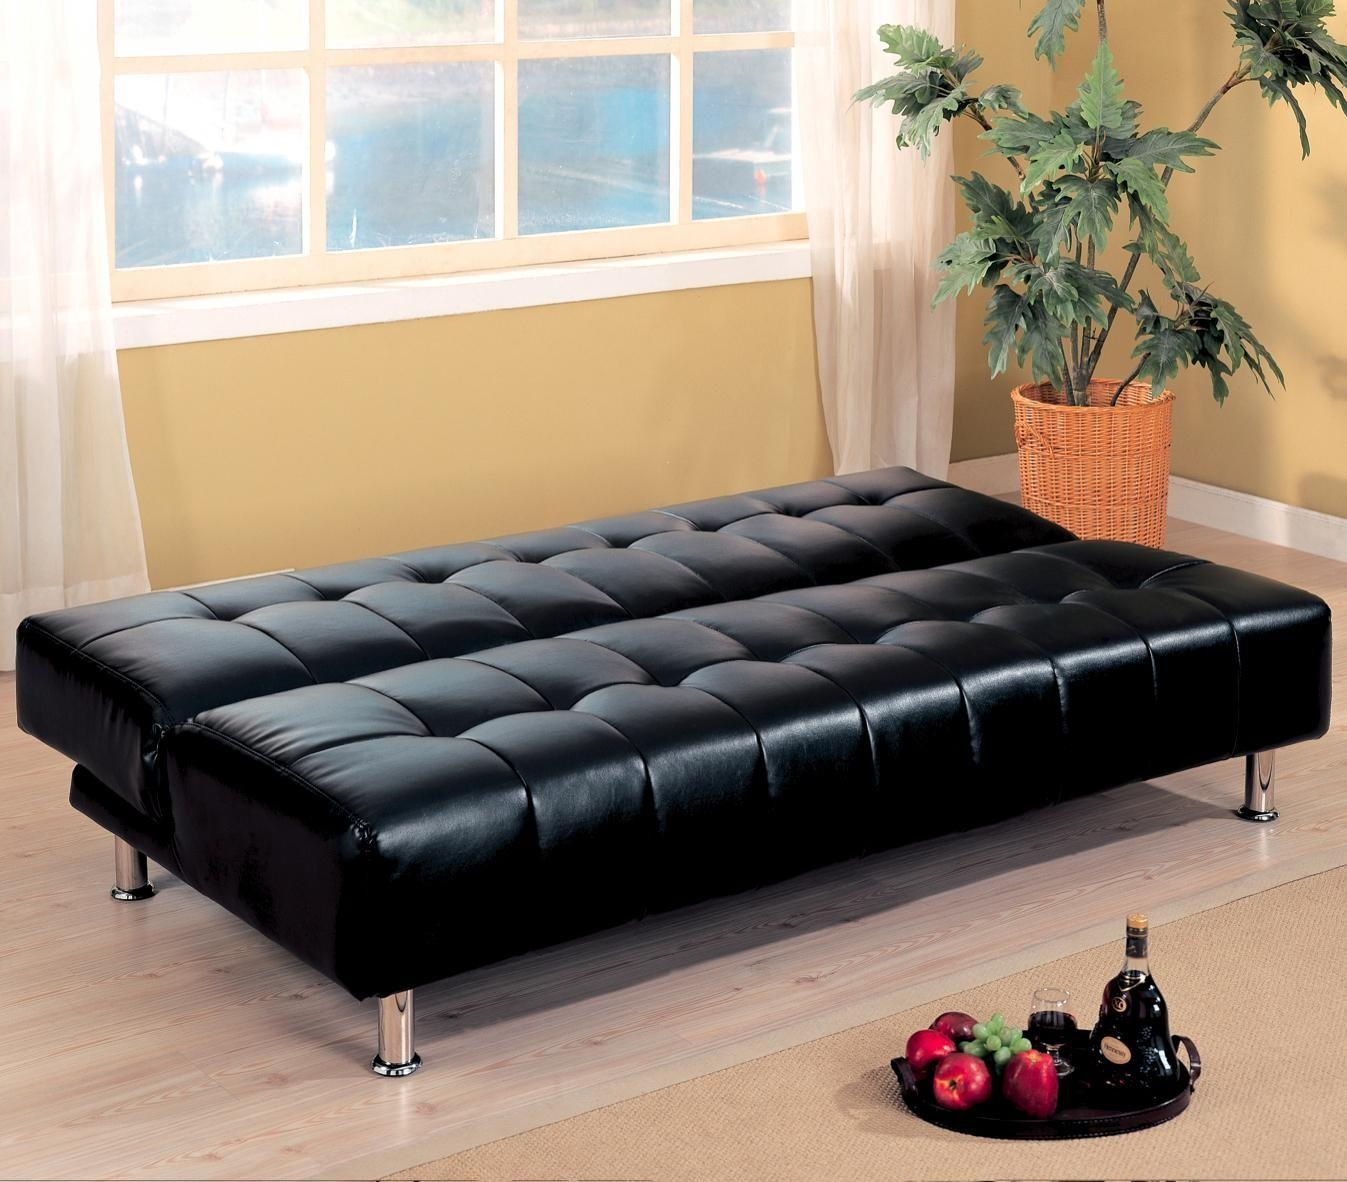 Living Room Sets And Sofa Convertible – Convertible Sofa Bed: The With Sofa Convertibles (Image 14 of 20)